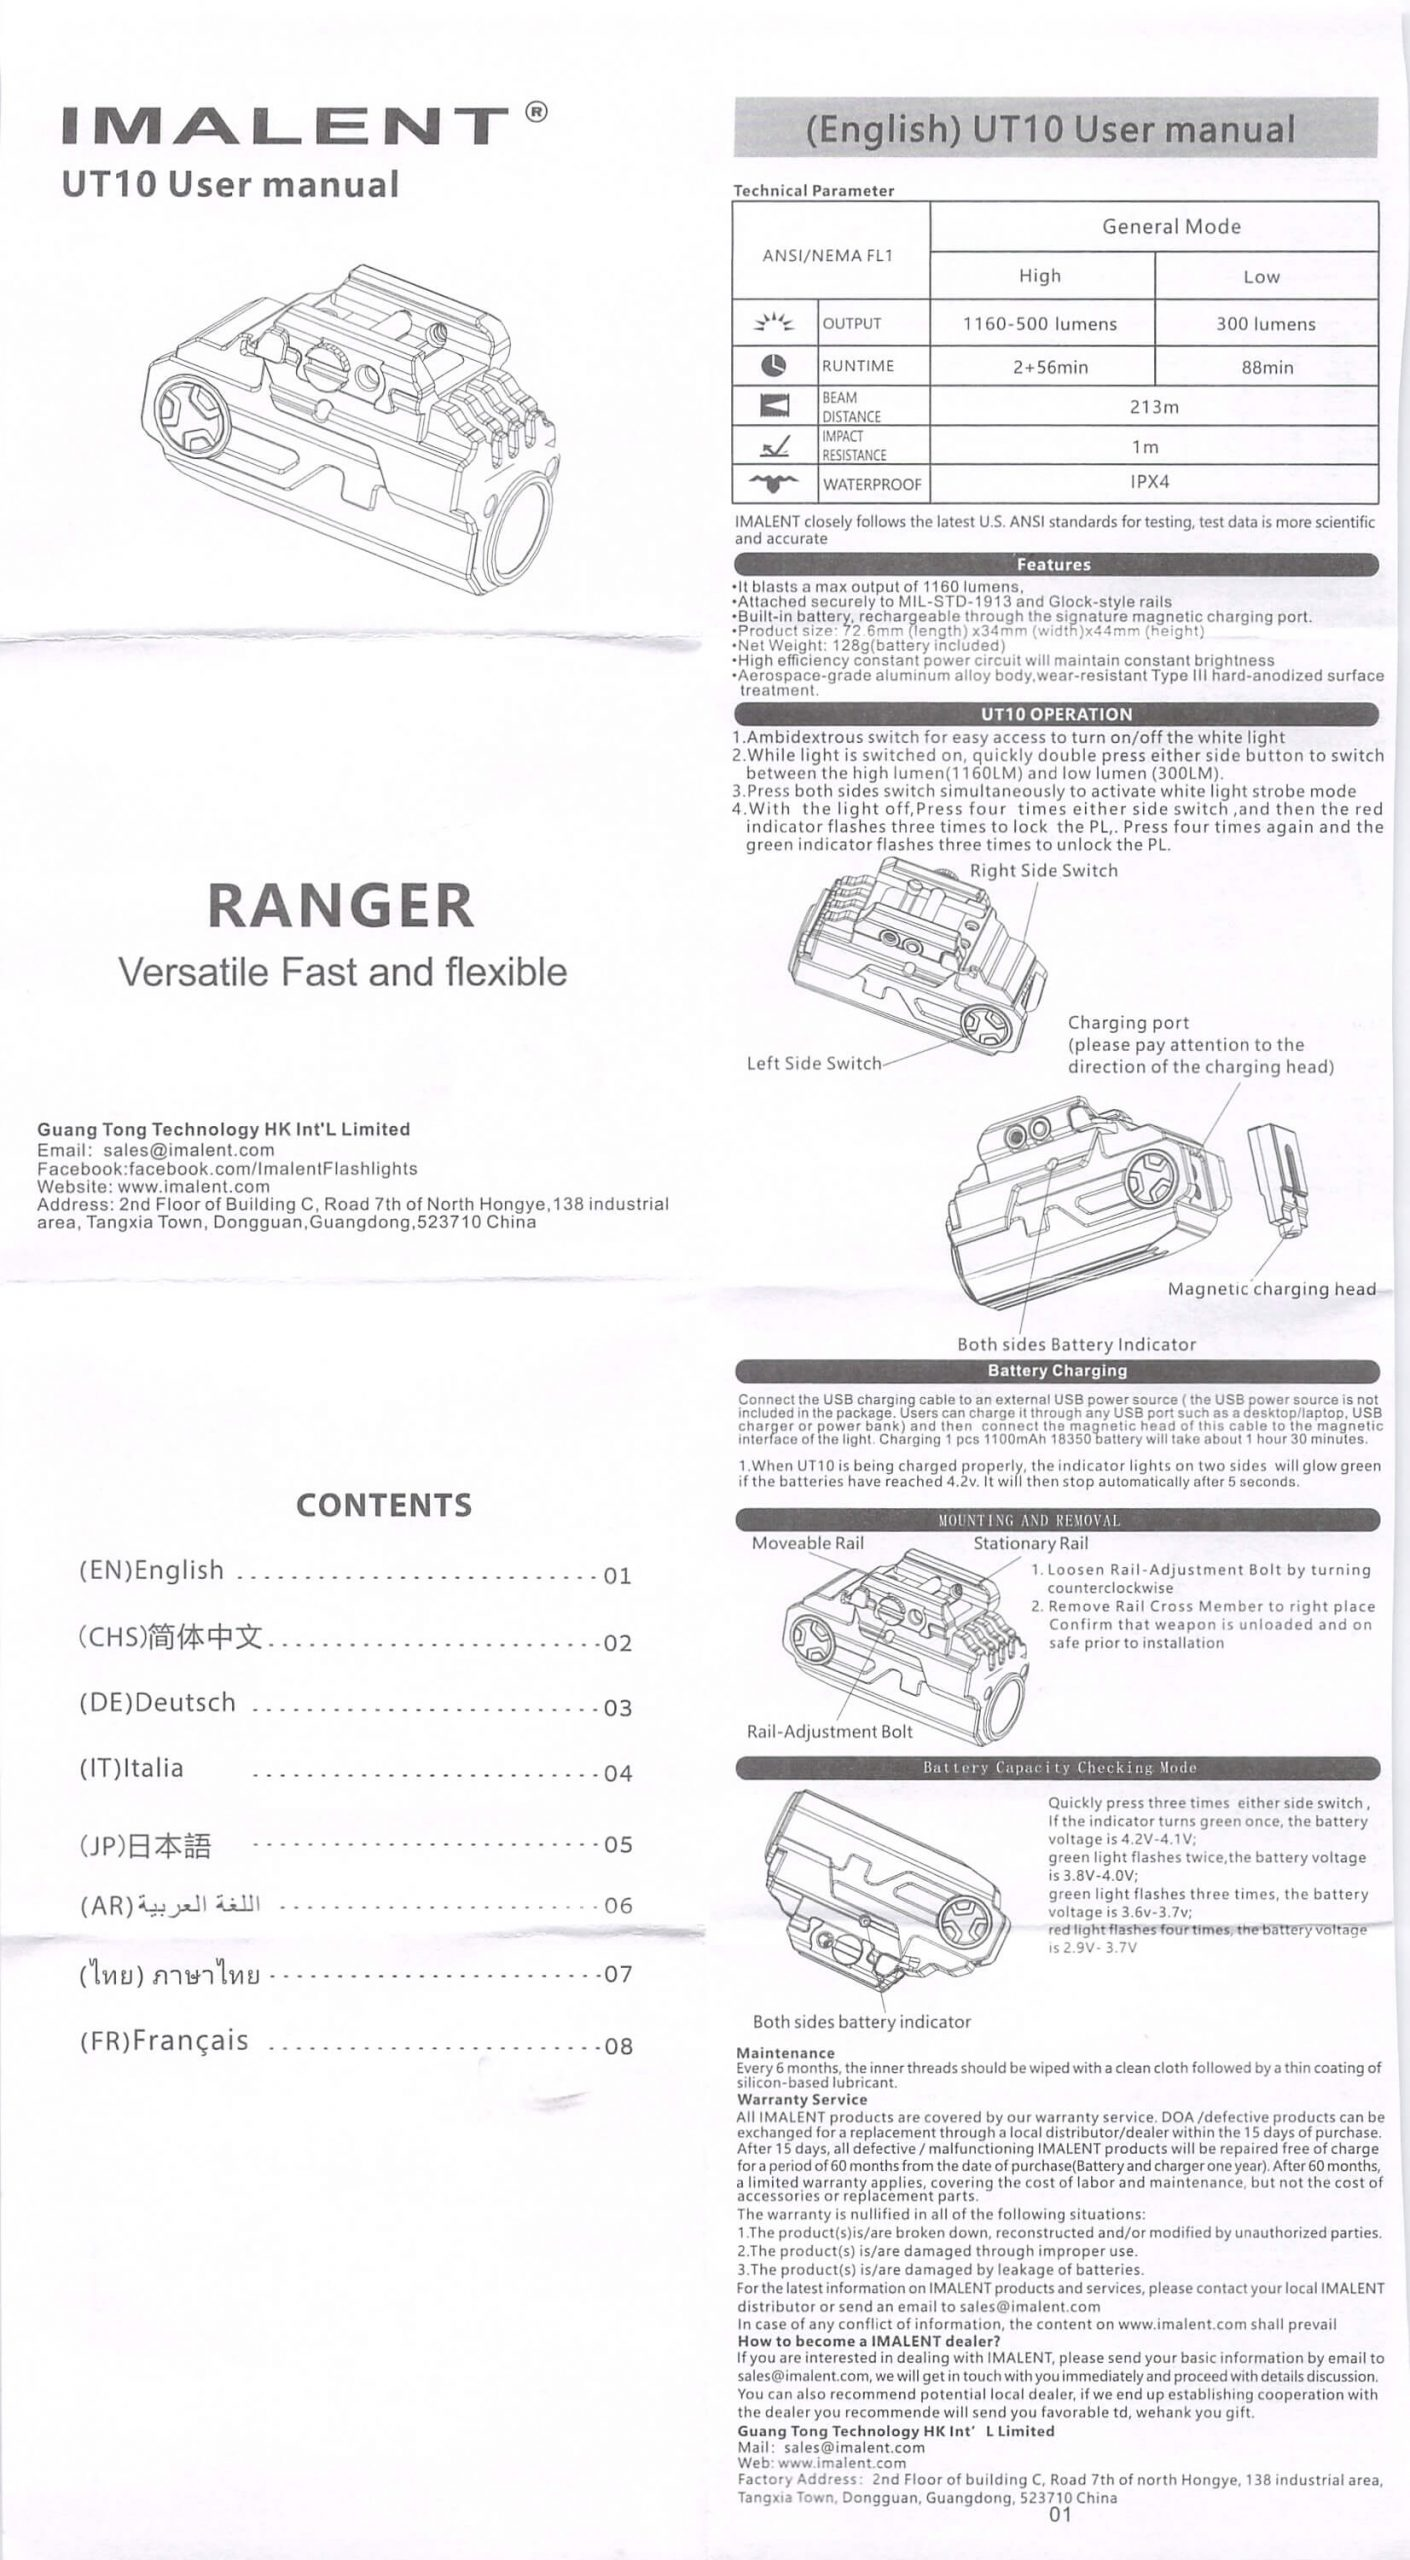 imalent ut10 tactical weapon flashlight manual